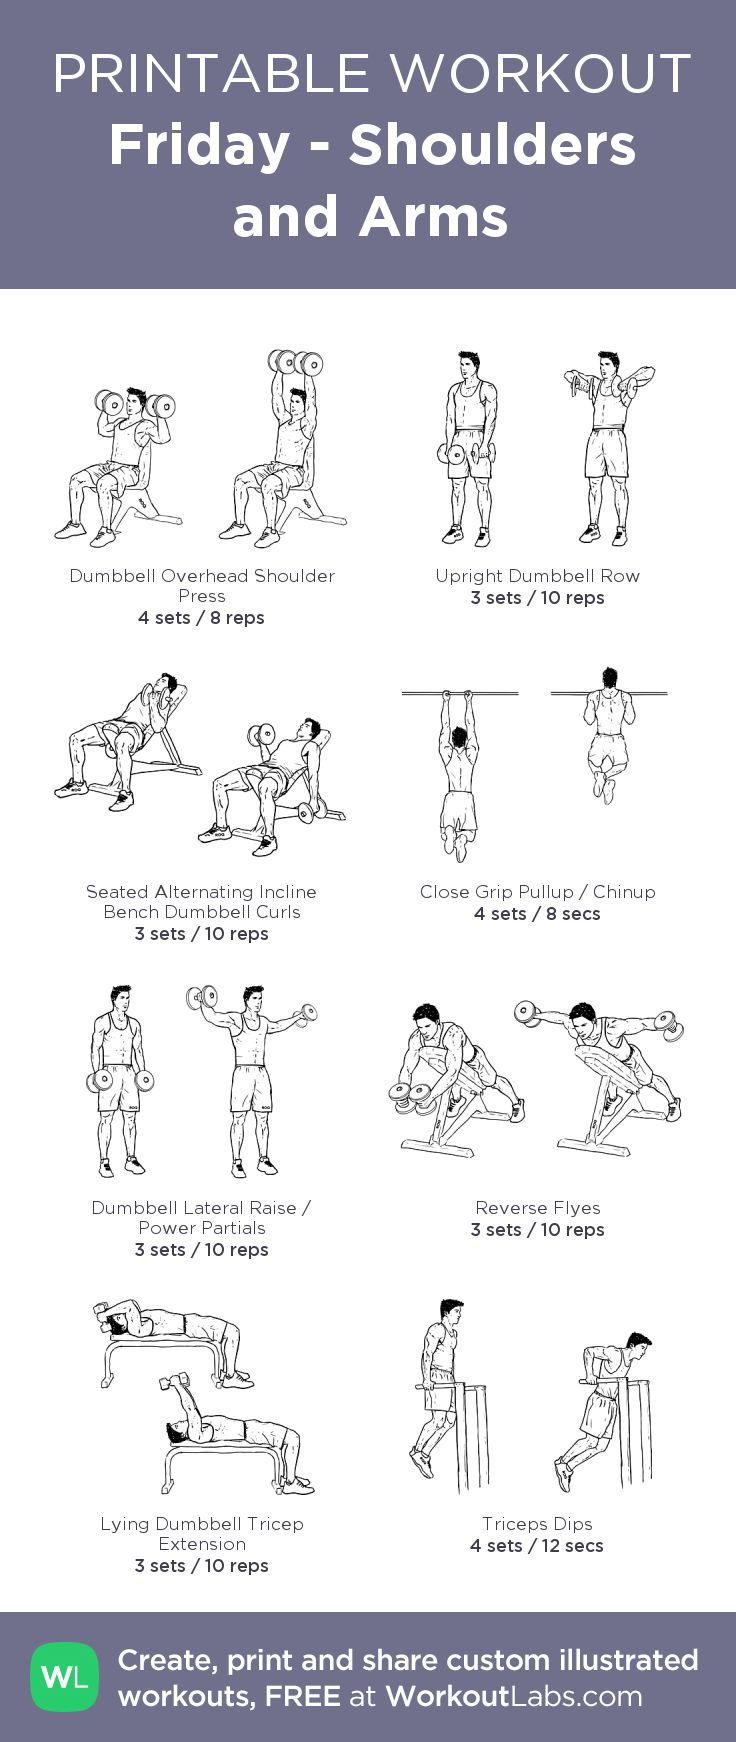 Friday - Shoulders and Arms:my visual workout created at WorkoutLabs.com • Click through to customize and download as a FREE PDF! #customworkout